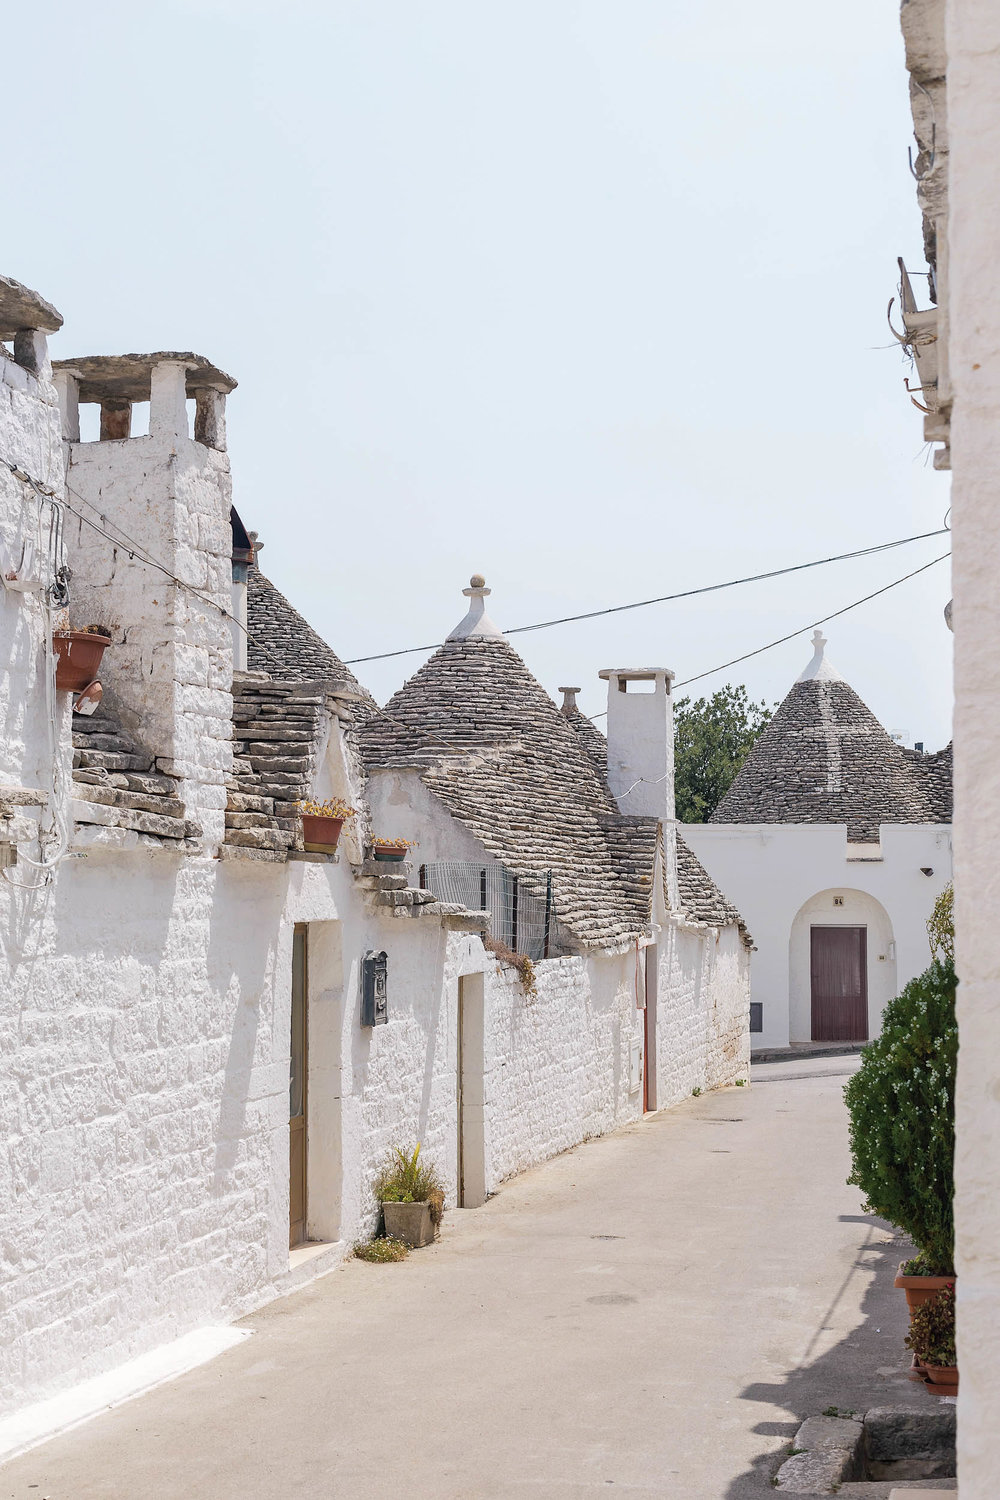 A picturesque street in Alberobello